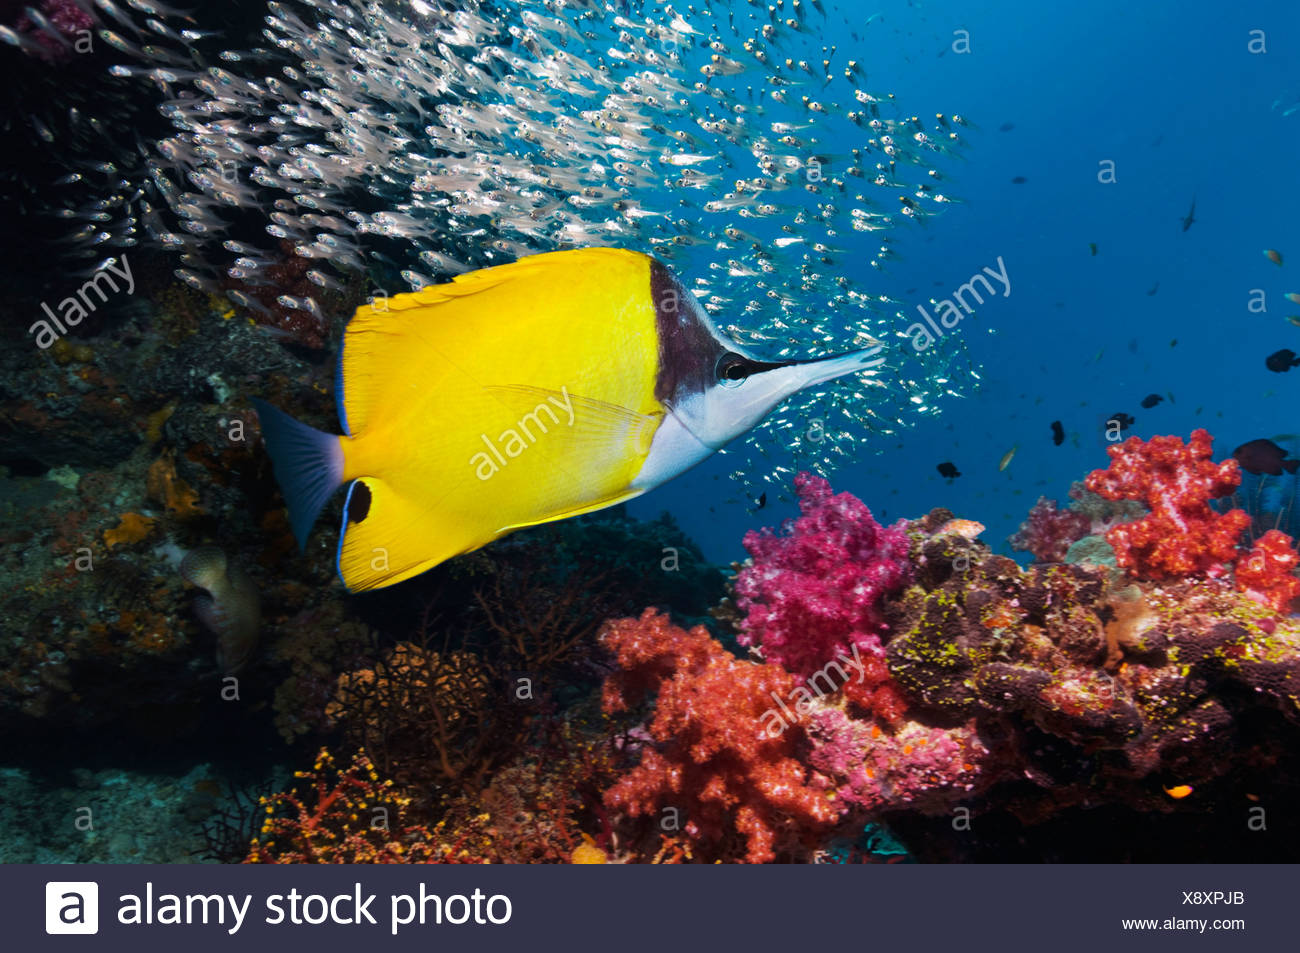 Long-nosed butterflyfish over coral reef scenery with soft corals. Andaman Sea, Thailand. - Stock Image